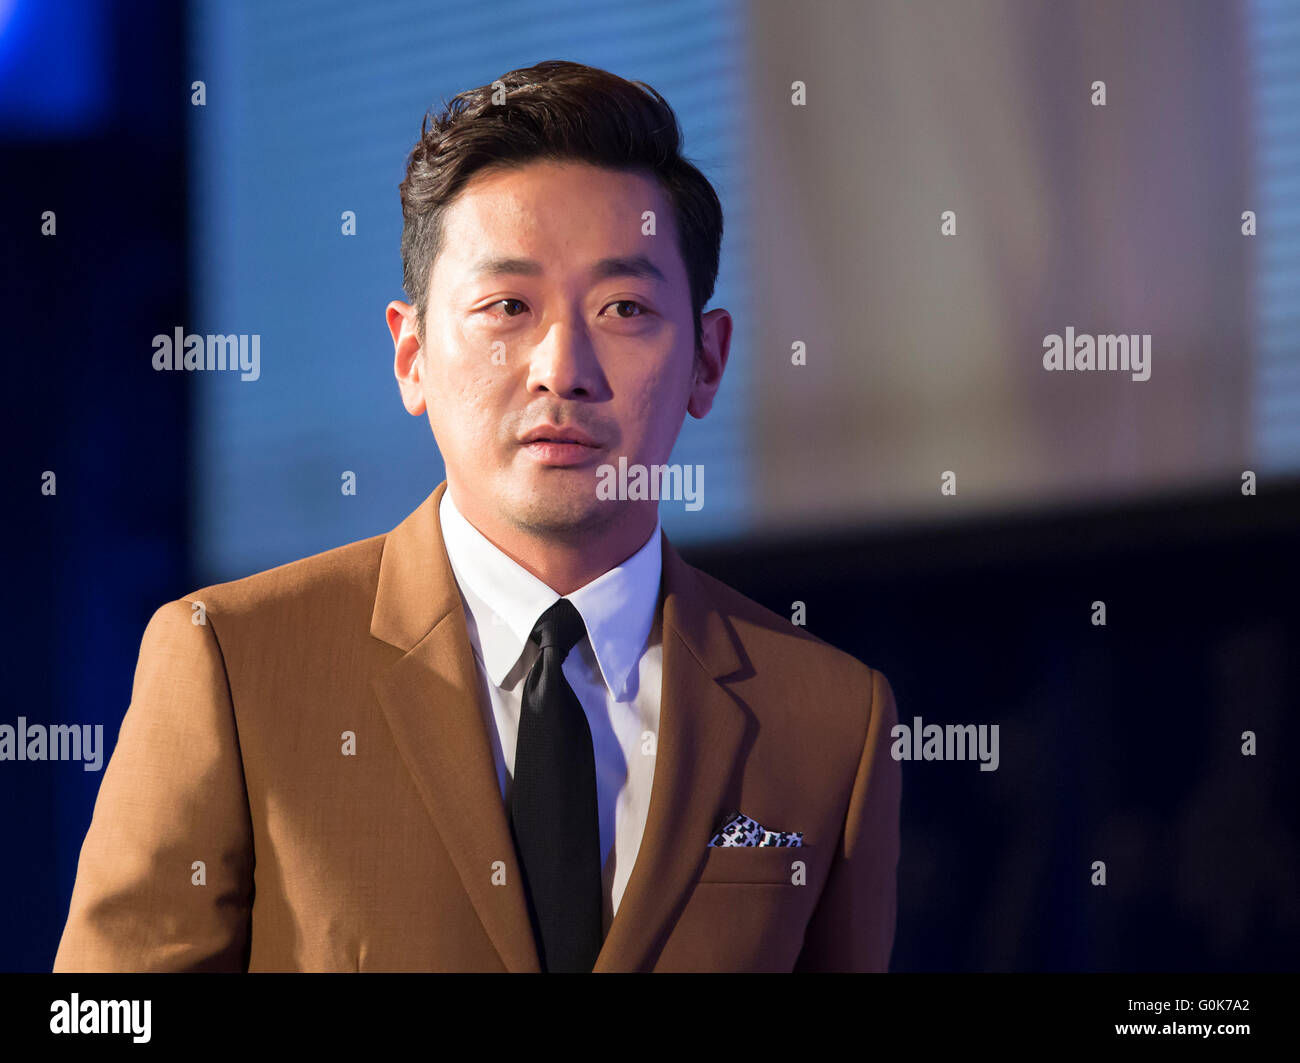 Ha Jung-woo, May 2, 2016 : South Korean actor Ha Jung-woo attends a press conference for his film, 'The Handmaiden' - Stock Image